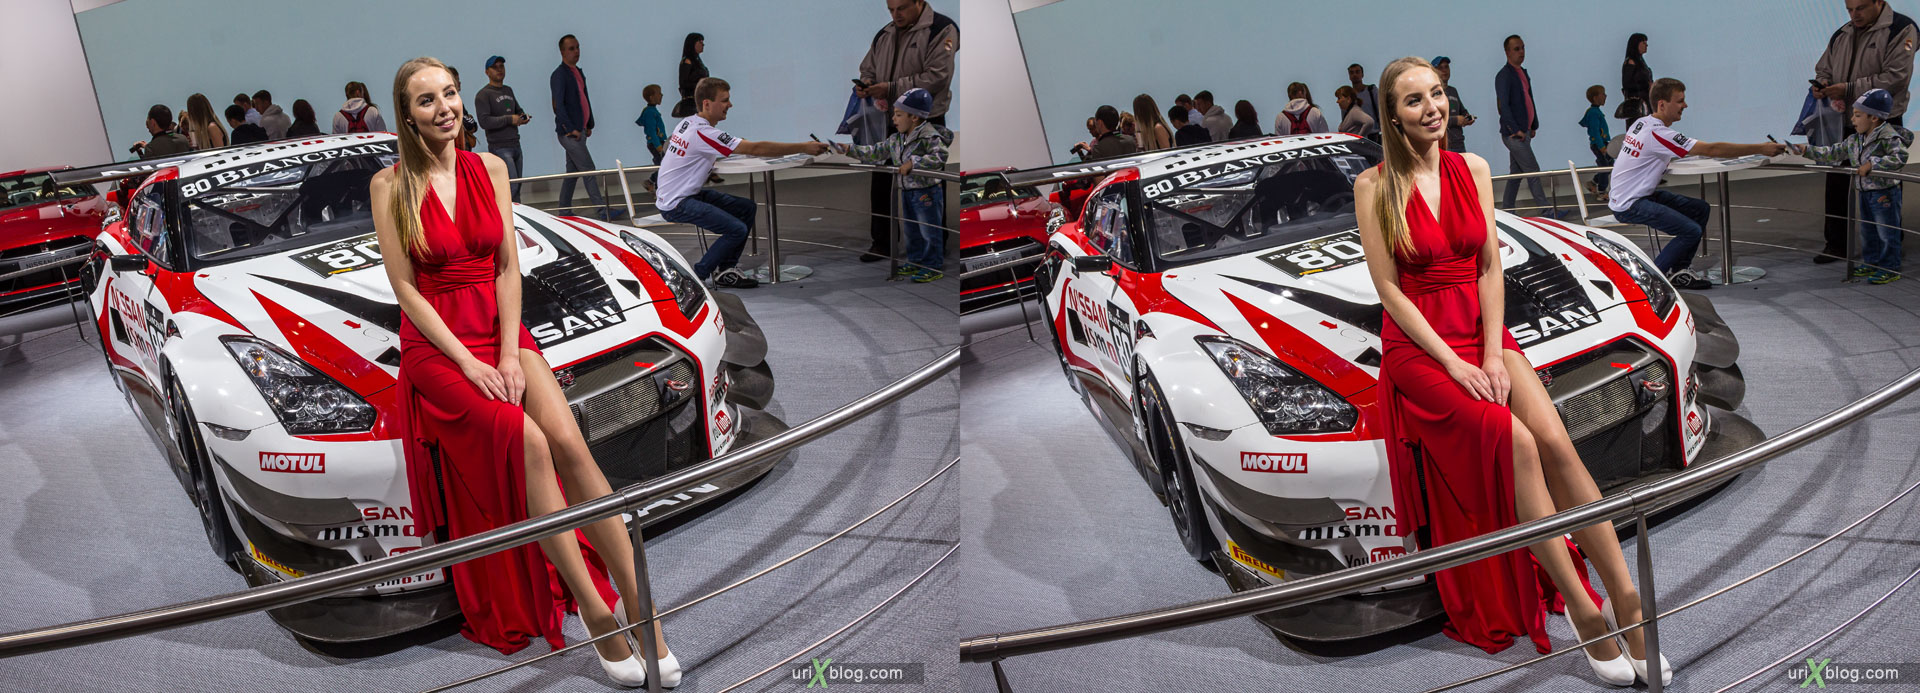 Nissan, Moscow International Automobile Salon 2014, MIAS 2014, girls, models, Crocus Expo, Moscow, Russia, 3D, stereo pair, cross-eyed, crossview, cross view stereo pair, stereoscopic, 2014